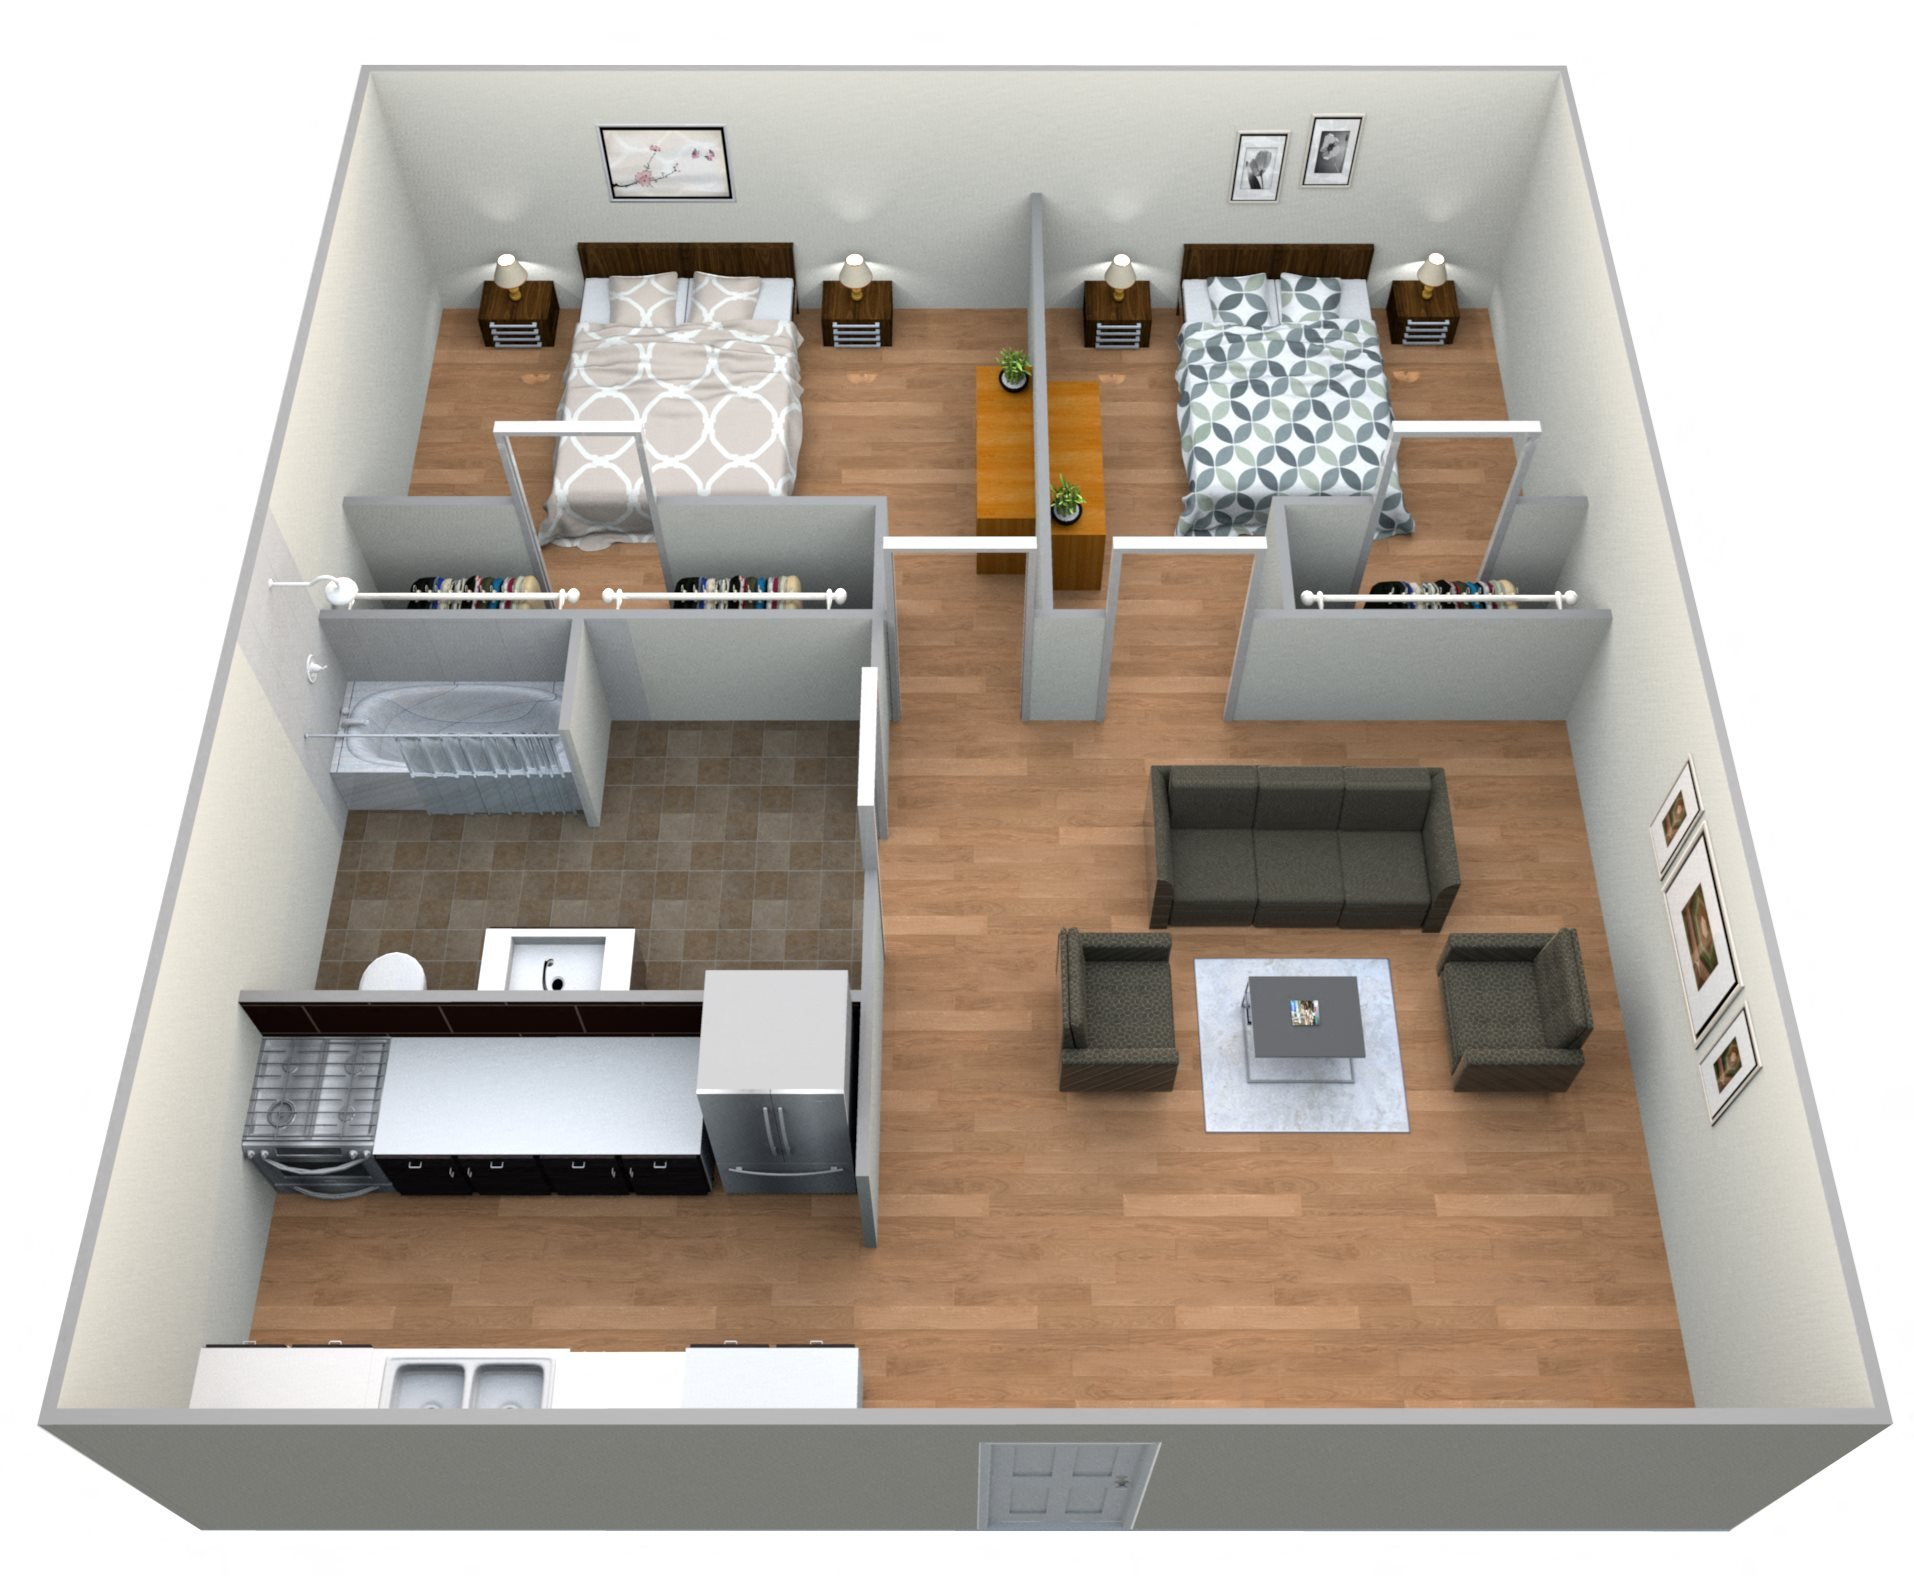 #8 Atrium 2 Bed w/ 1 Bath Floor Plan 10